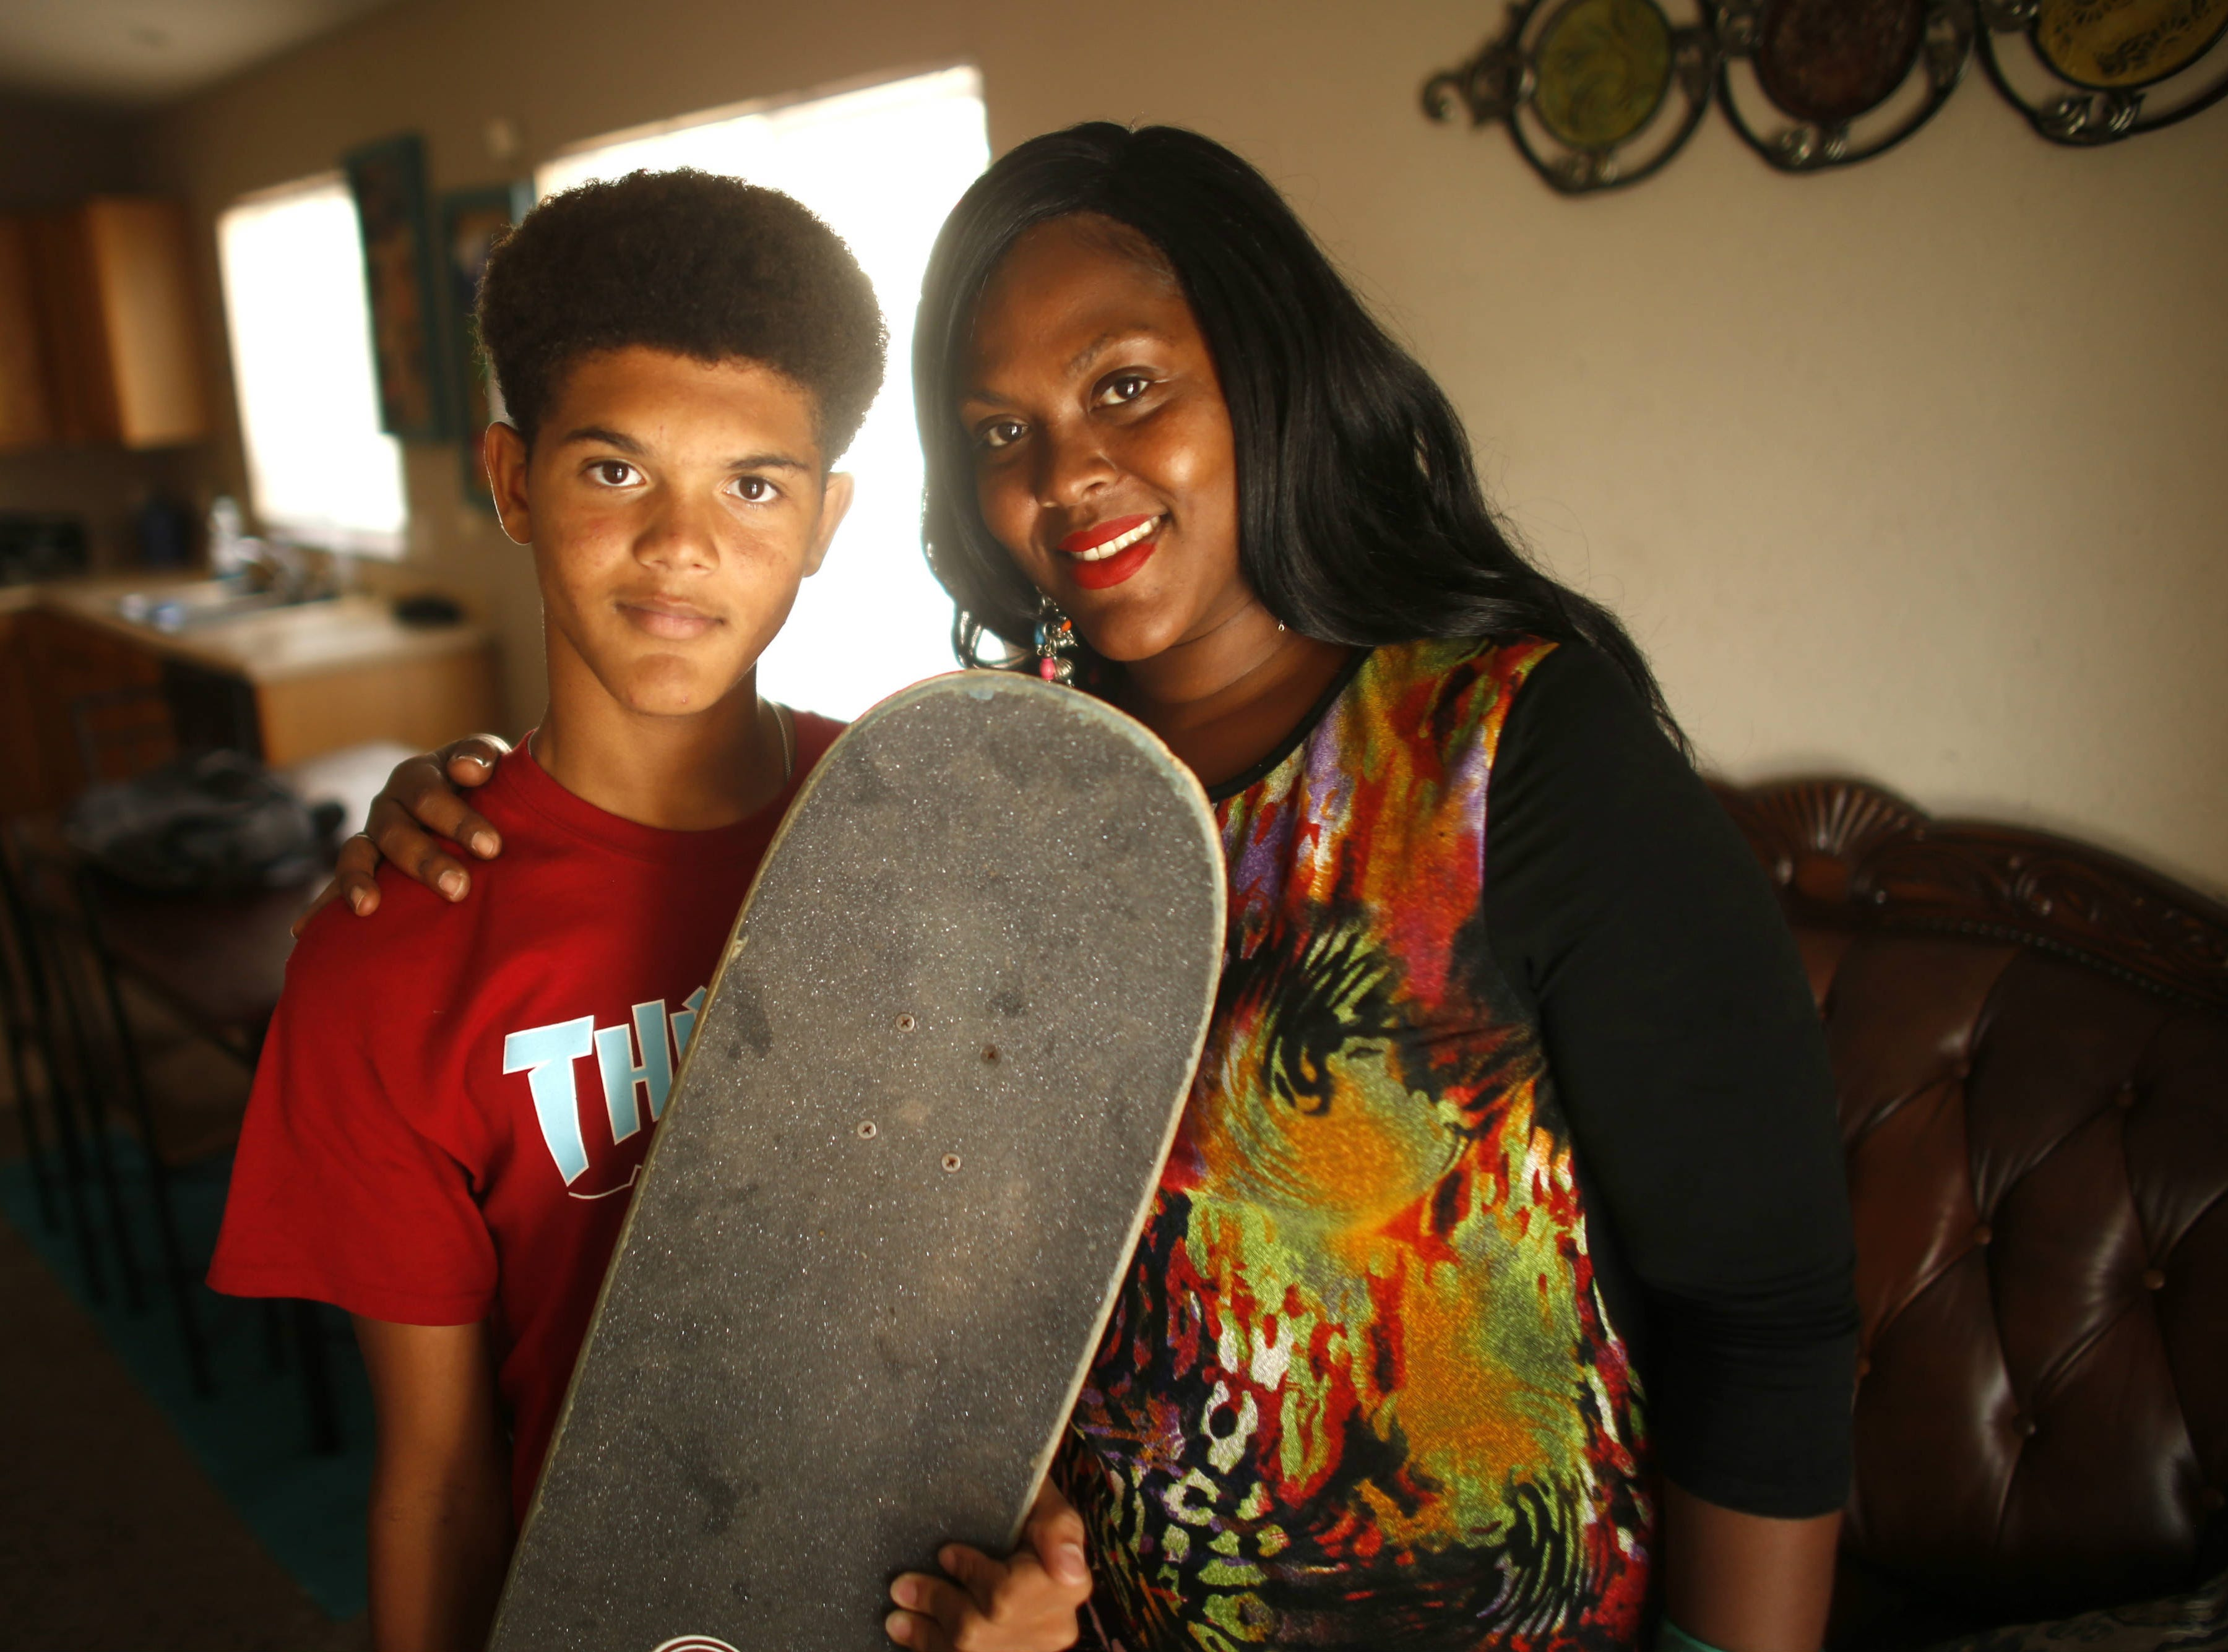 Krista Wiedman puts an arm around her son, Josiah, as he holds his skateboard, which they believe helped protect him from the full force of the lightning, at their home in El Mirage on Aug. 16, 2018.